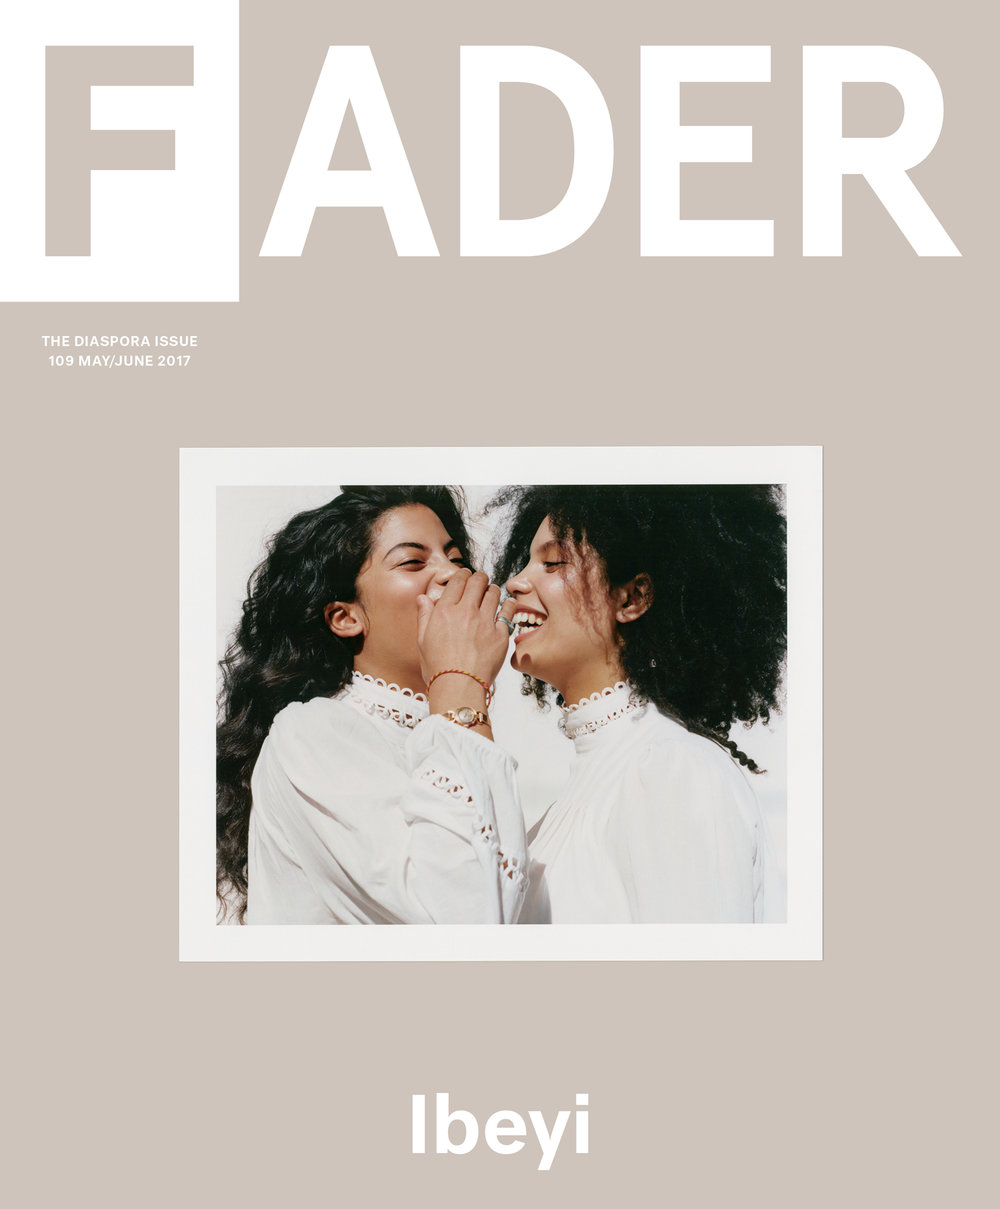 amber_mahoney_ibeyi_the_fader_cover_diaspora_001.jpg